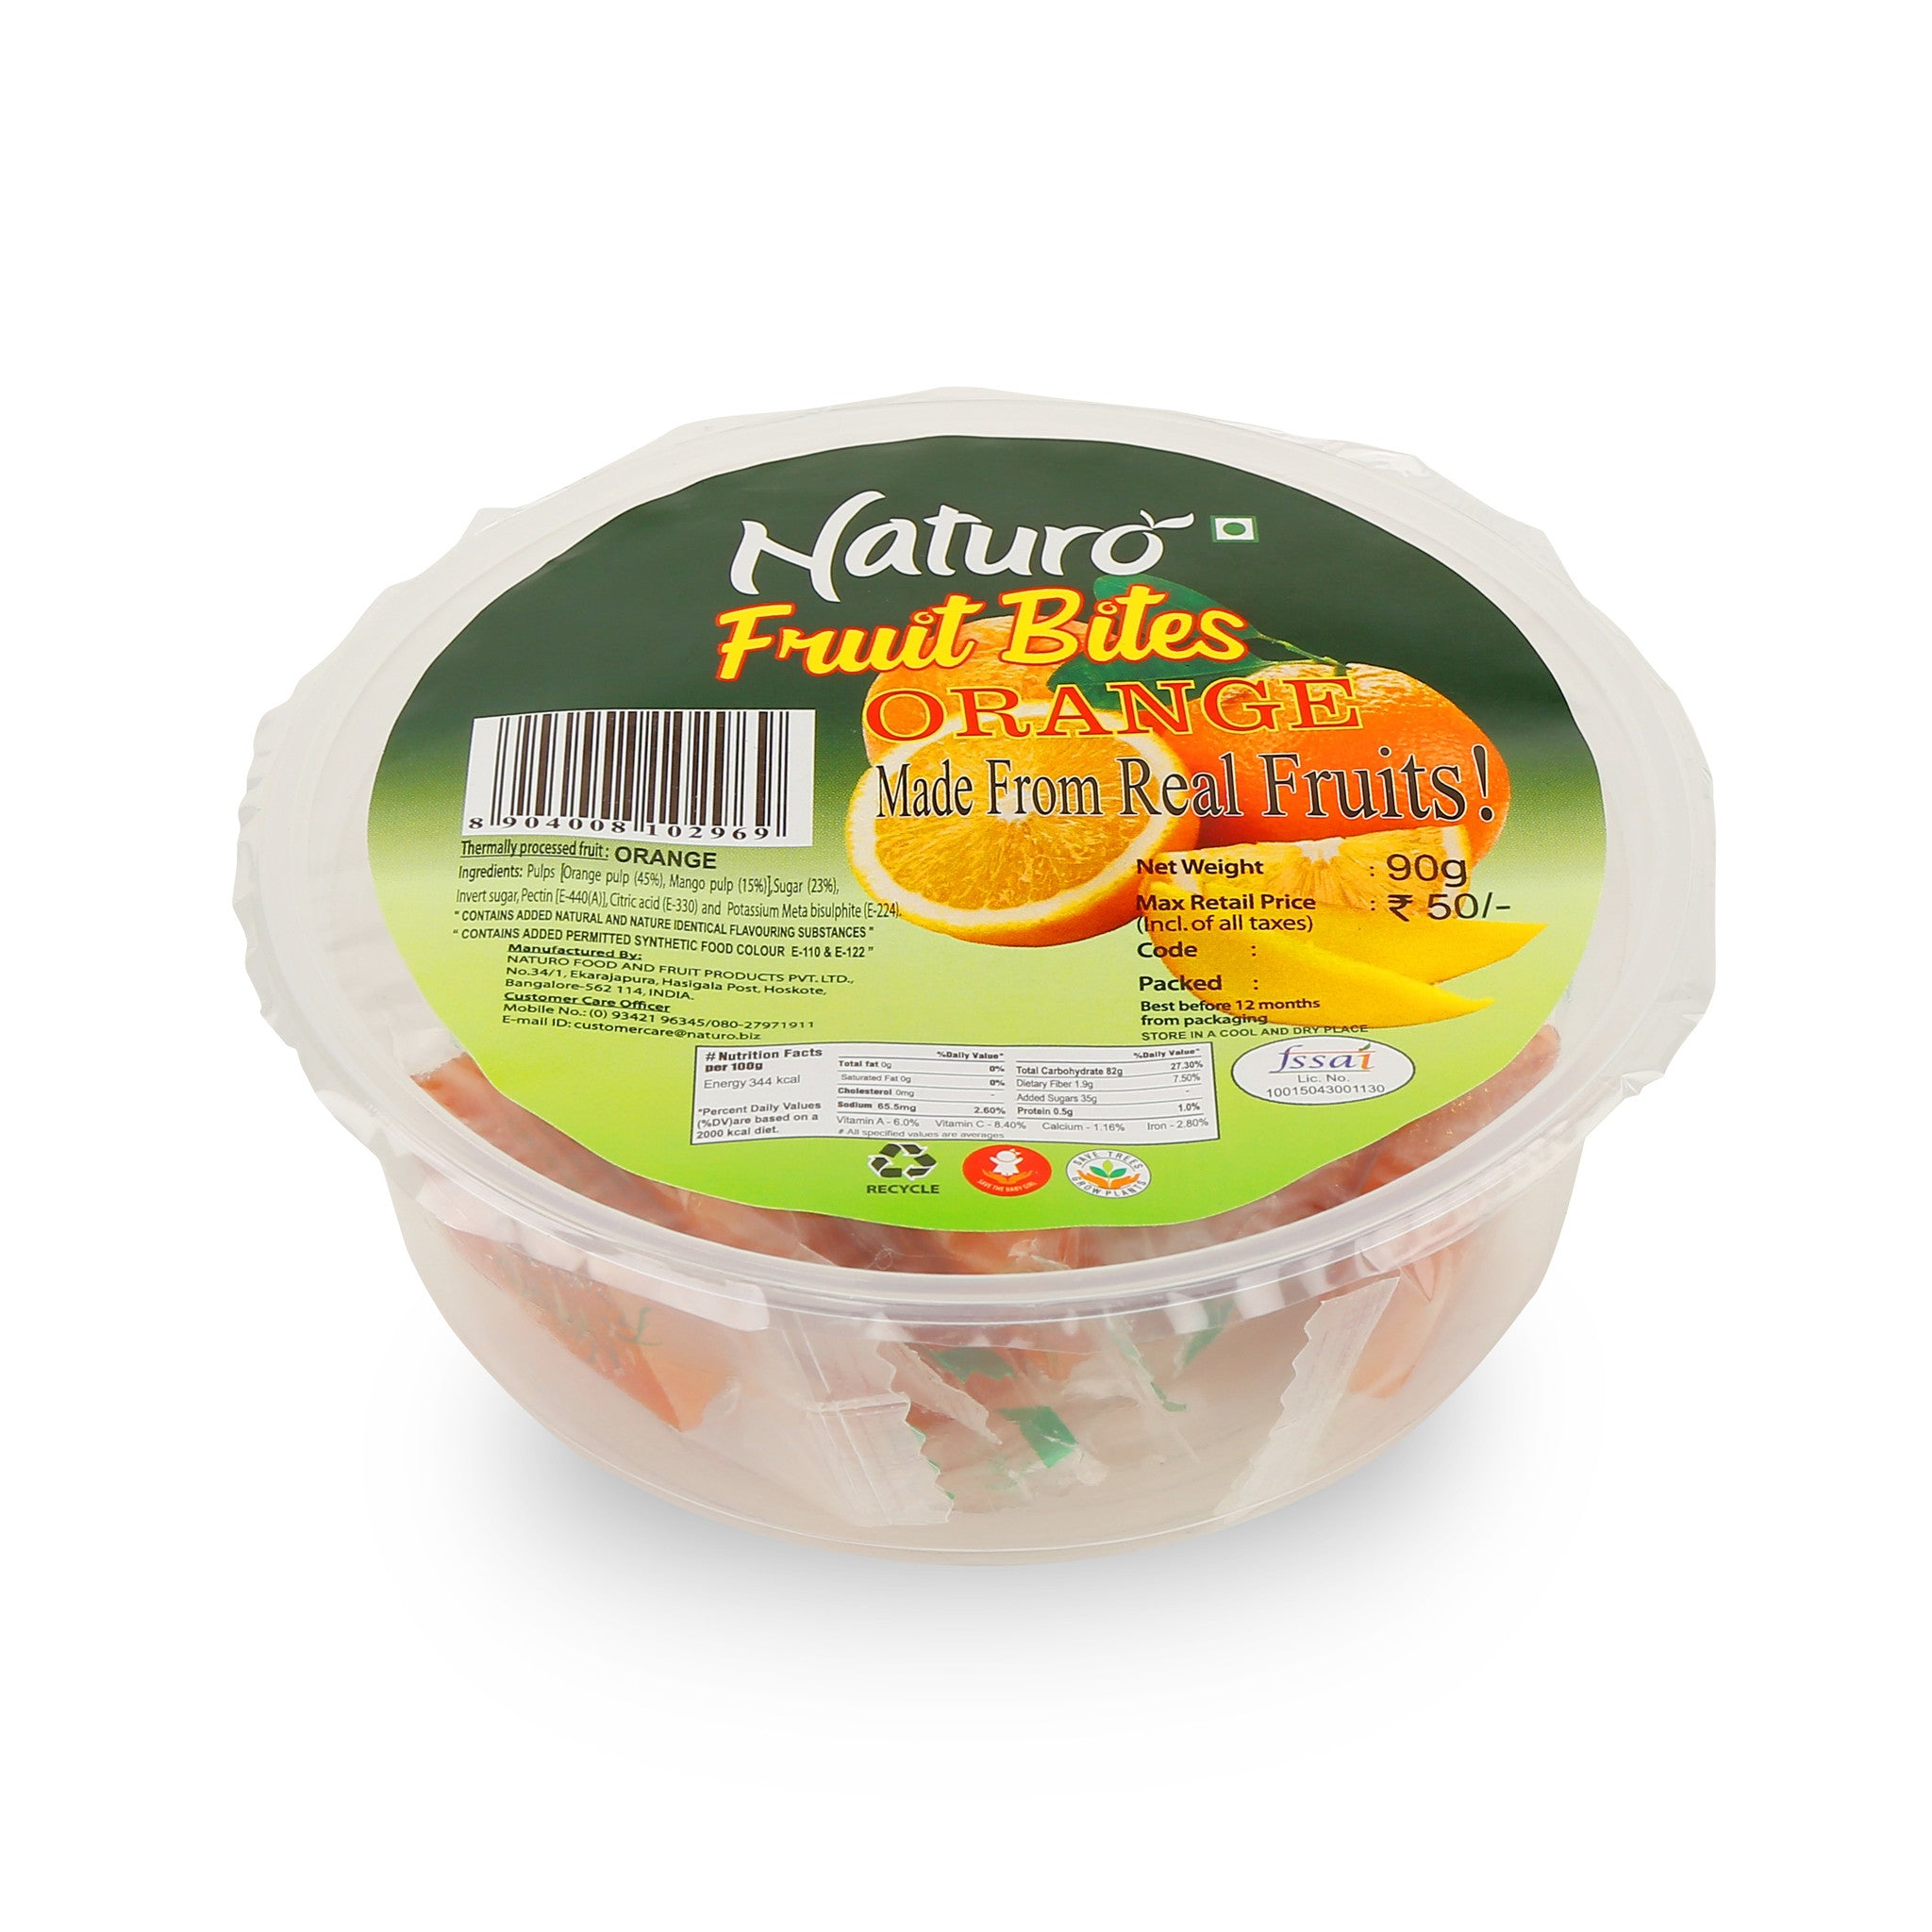 Naturo Orange Fruit Bites Round Container - 90g